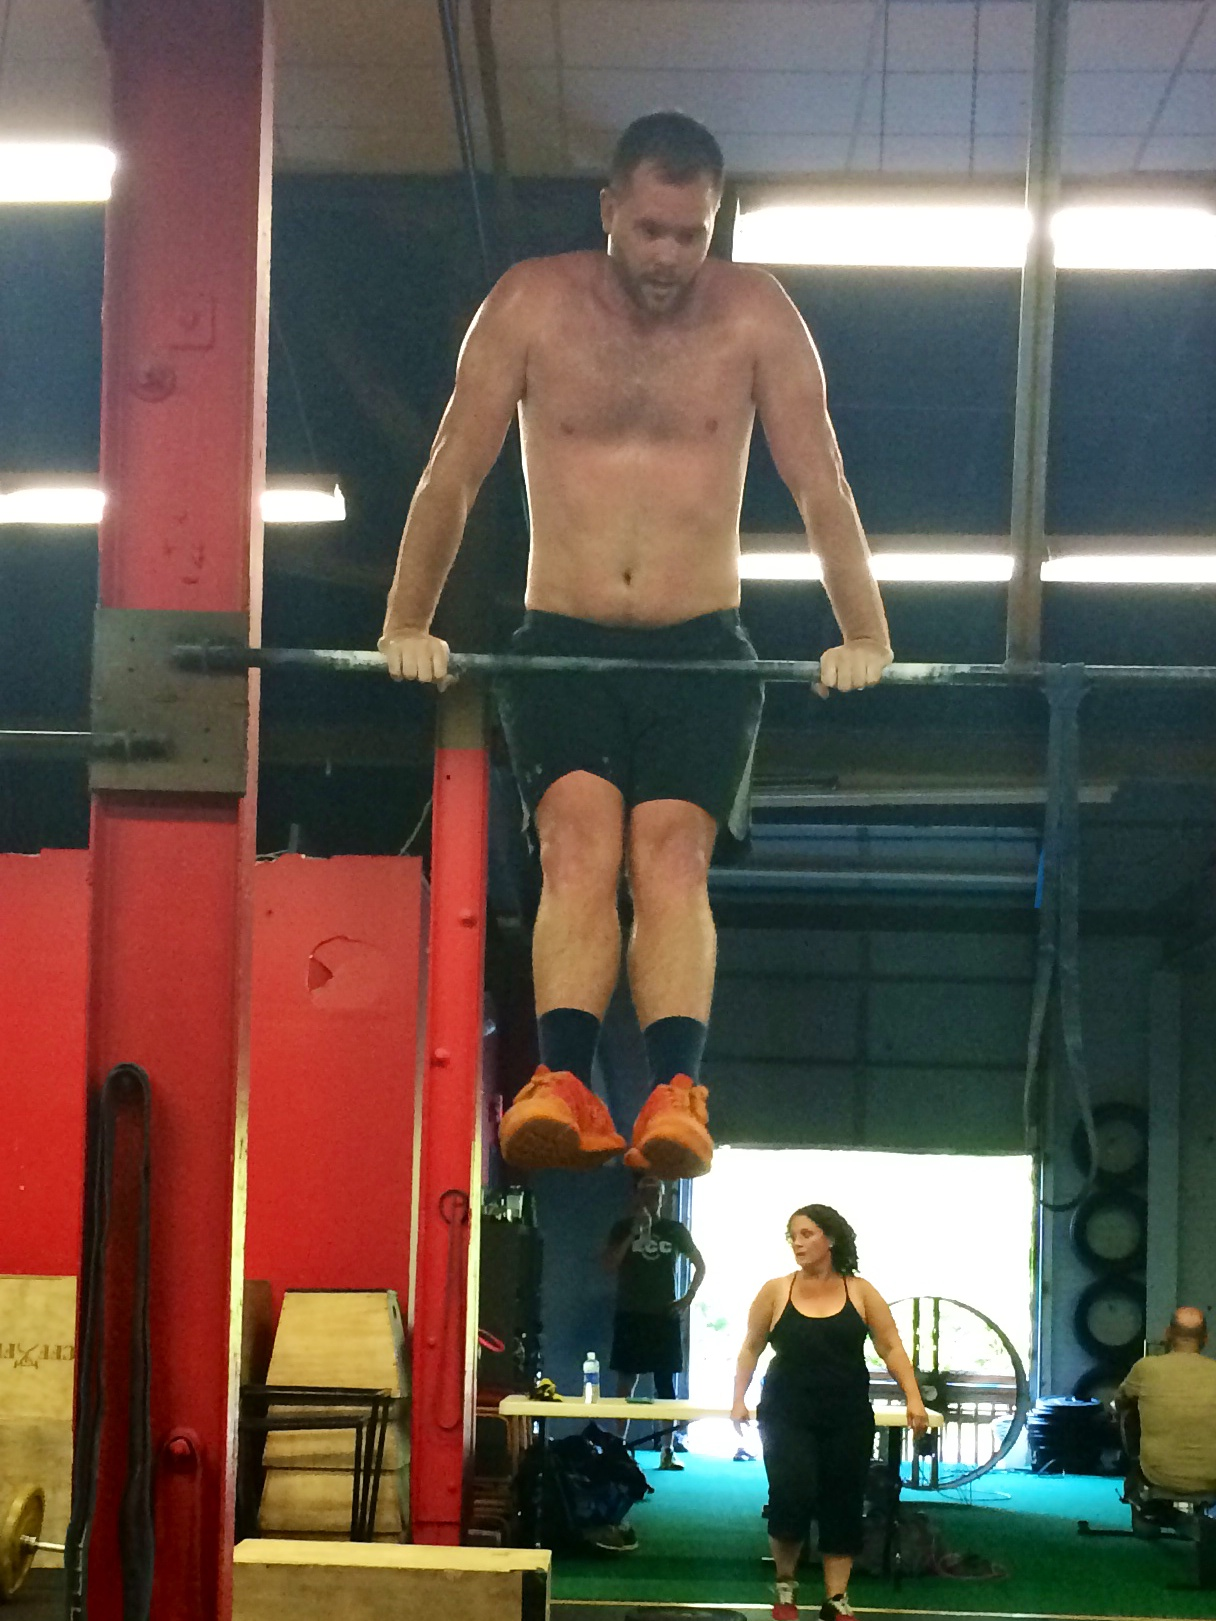 This workout is in honor of Will. This will be his last workout here at Elm City CrossFit. Will has been a huge part of our family and community for many years! We wish him good luck and success.